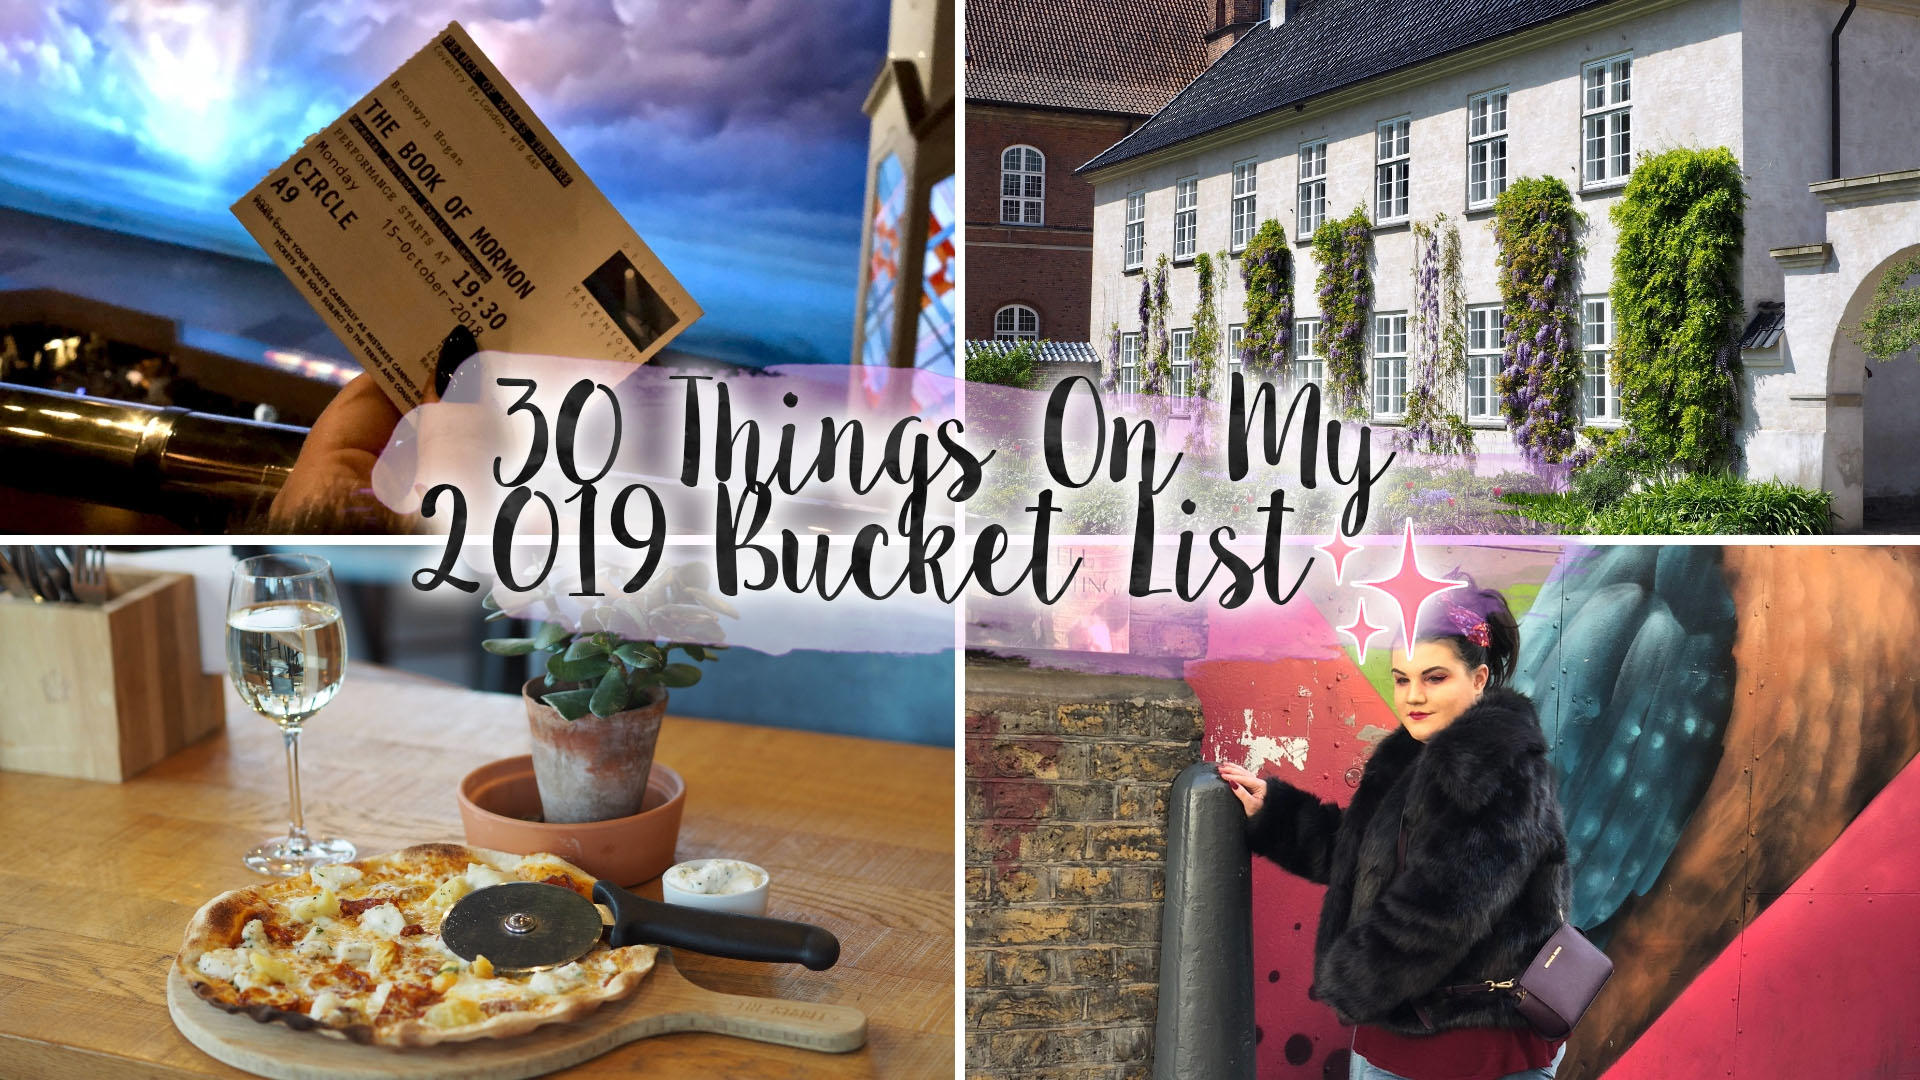 30 Things On My Bucket List For 2019 || Life Lately